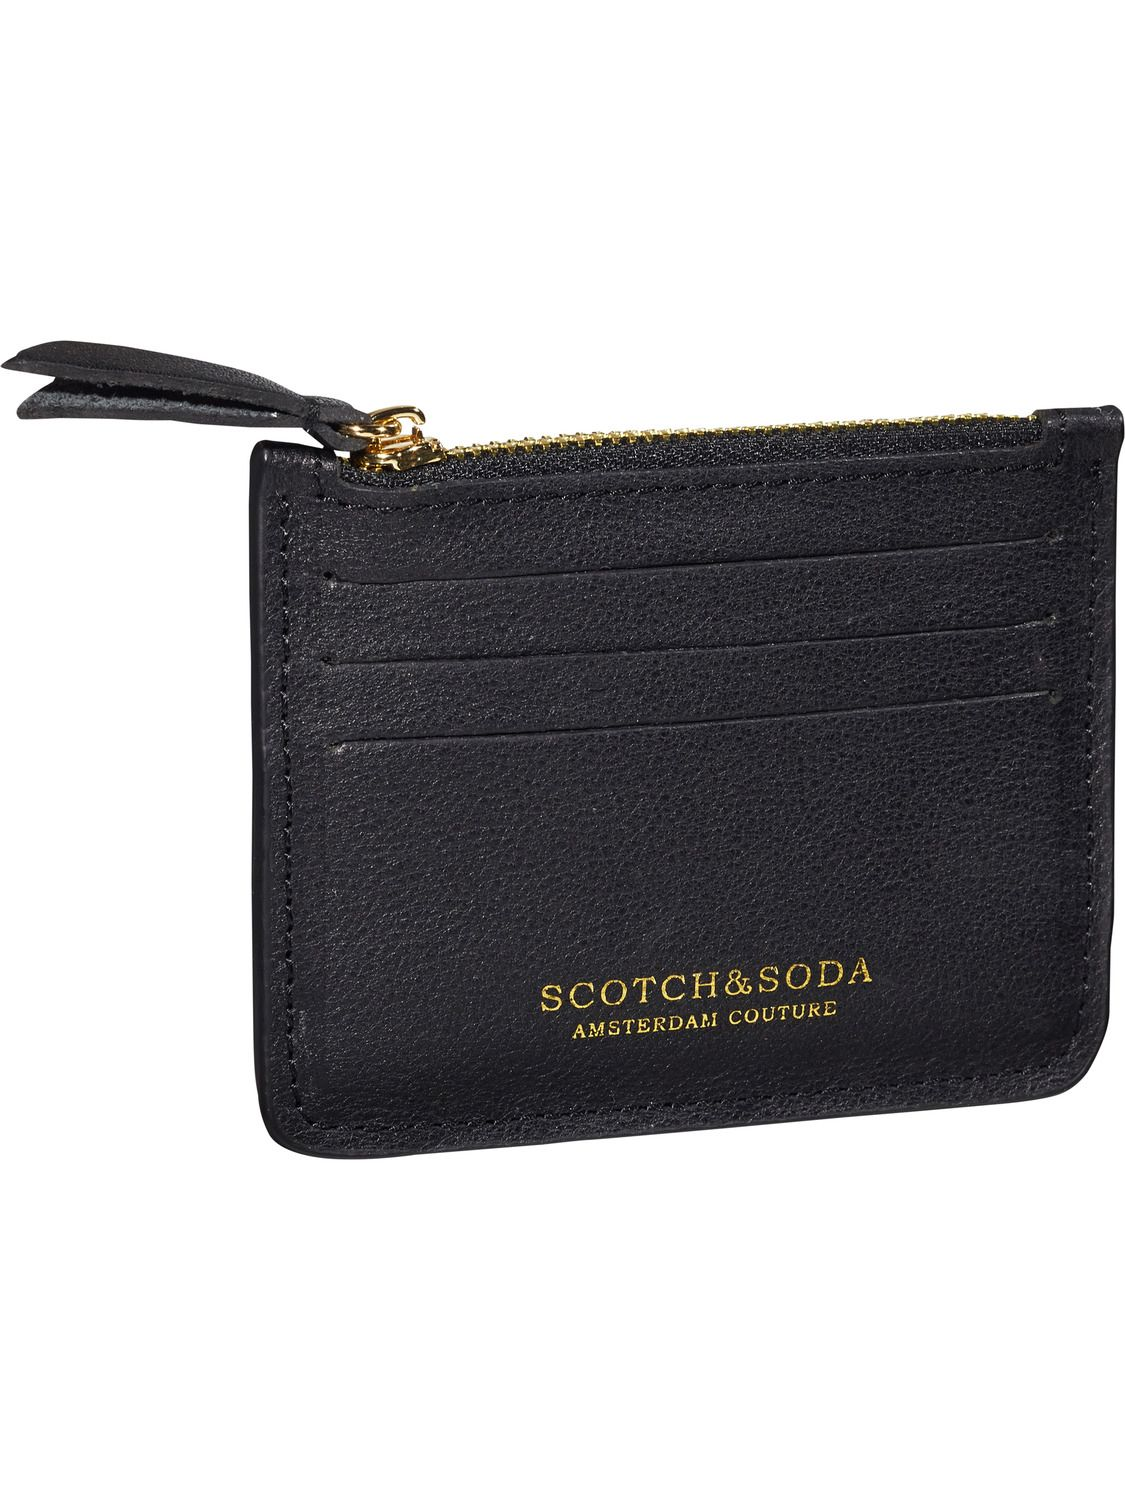 Leather Credit Card Holder Style Pinterest Leather Leather